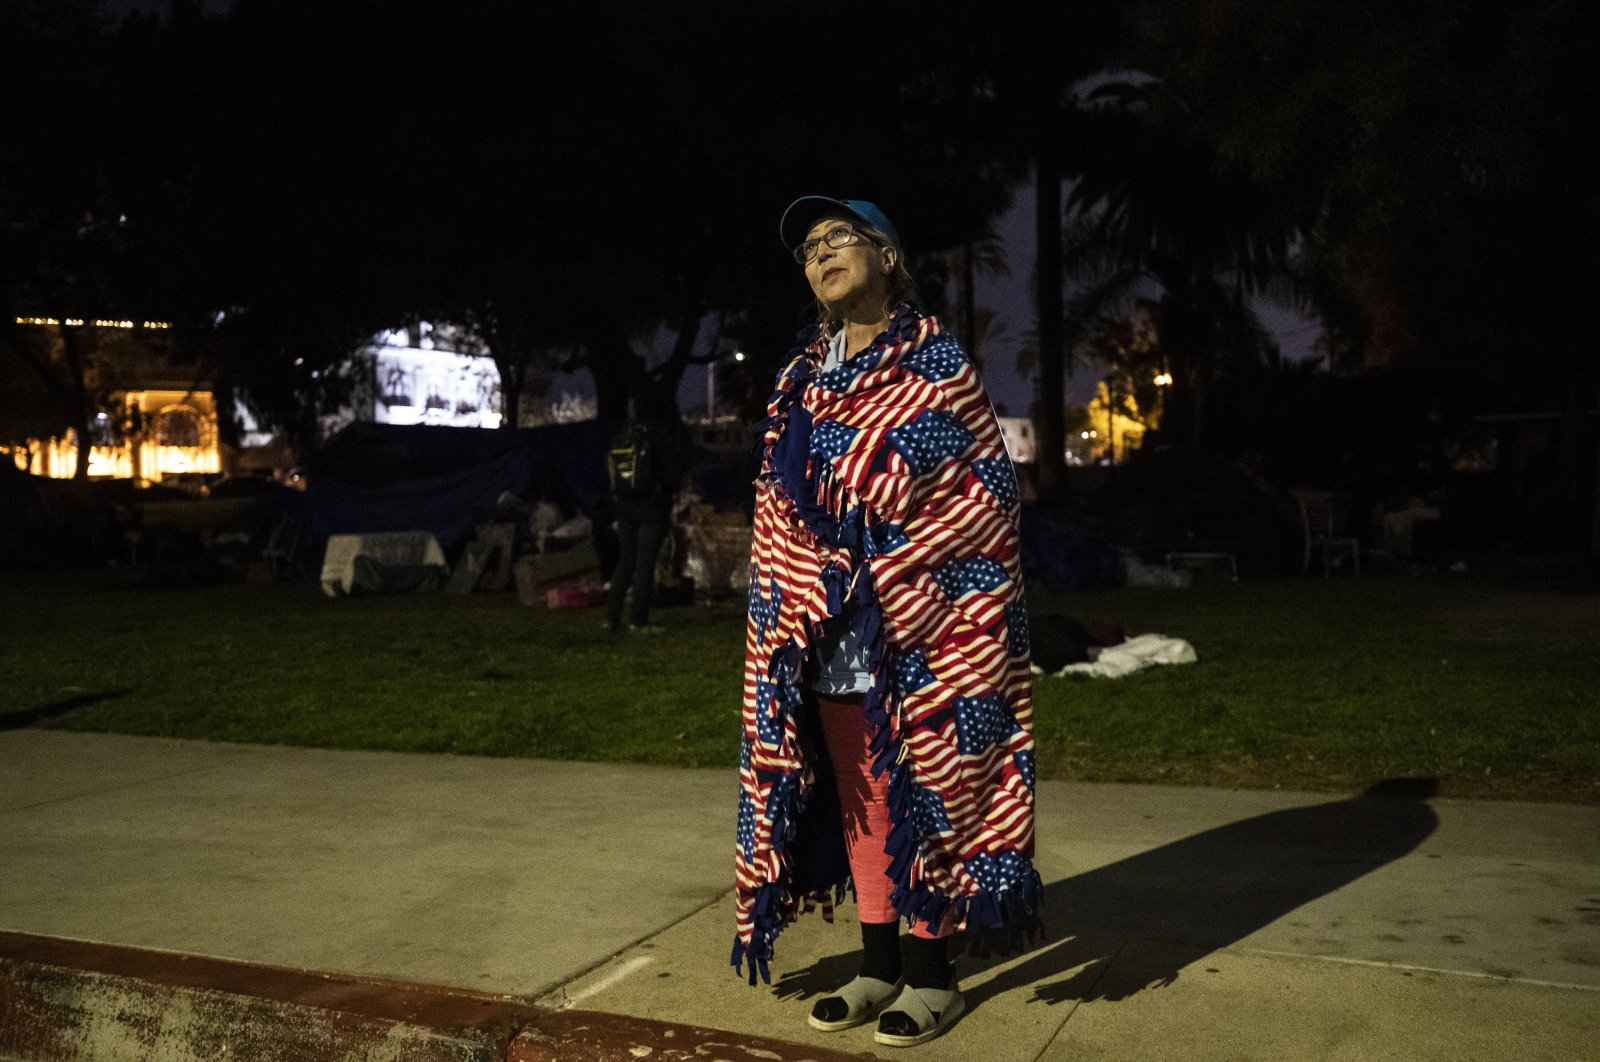 Antonia Ramirez from Mexico, experiencing homelessness for the past 20 years, stands wrapped in a blanket displaying American flags next to the tents of the homeless encampment of Echo Park Lake as a large police force is mobilized to clear the area in Los Angeles, California, U.S., March 24, 2021. (EPA Photo)